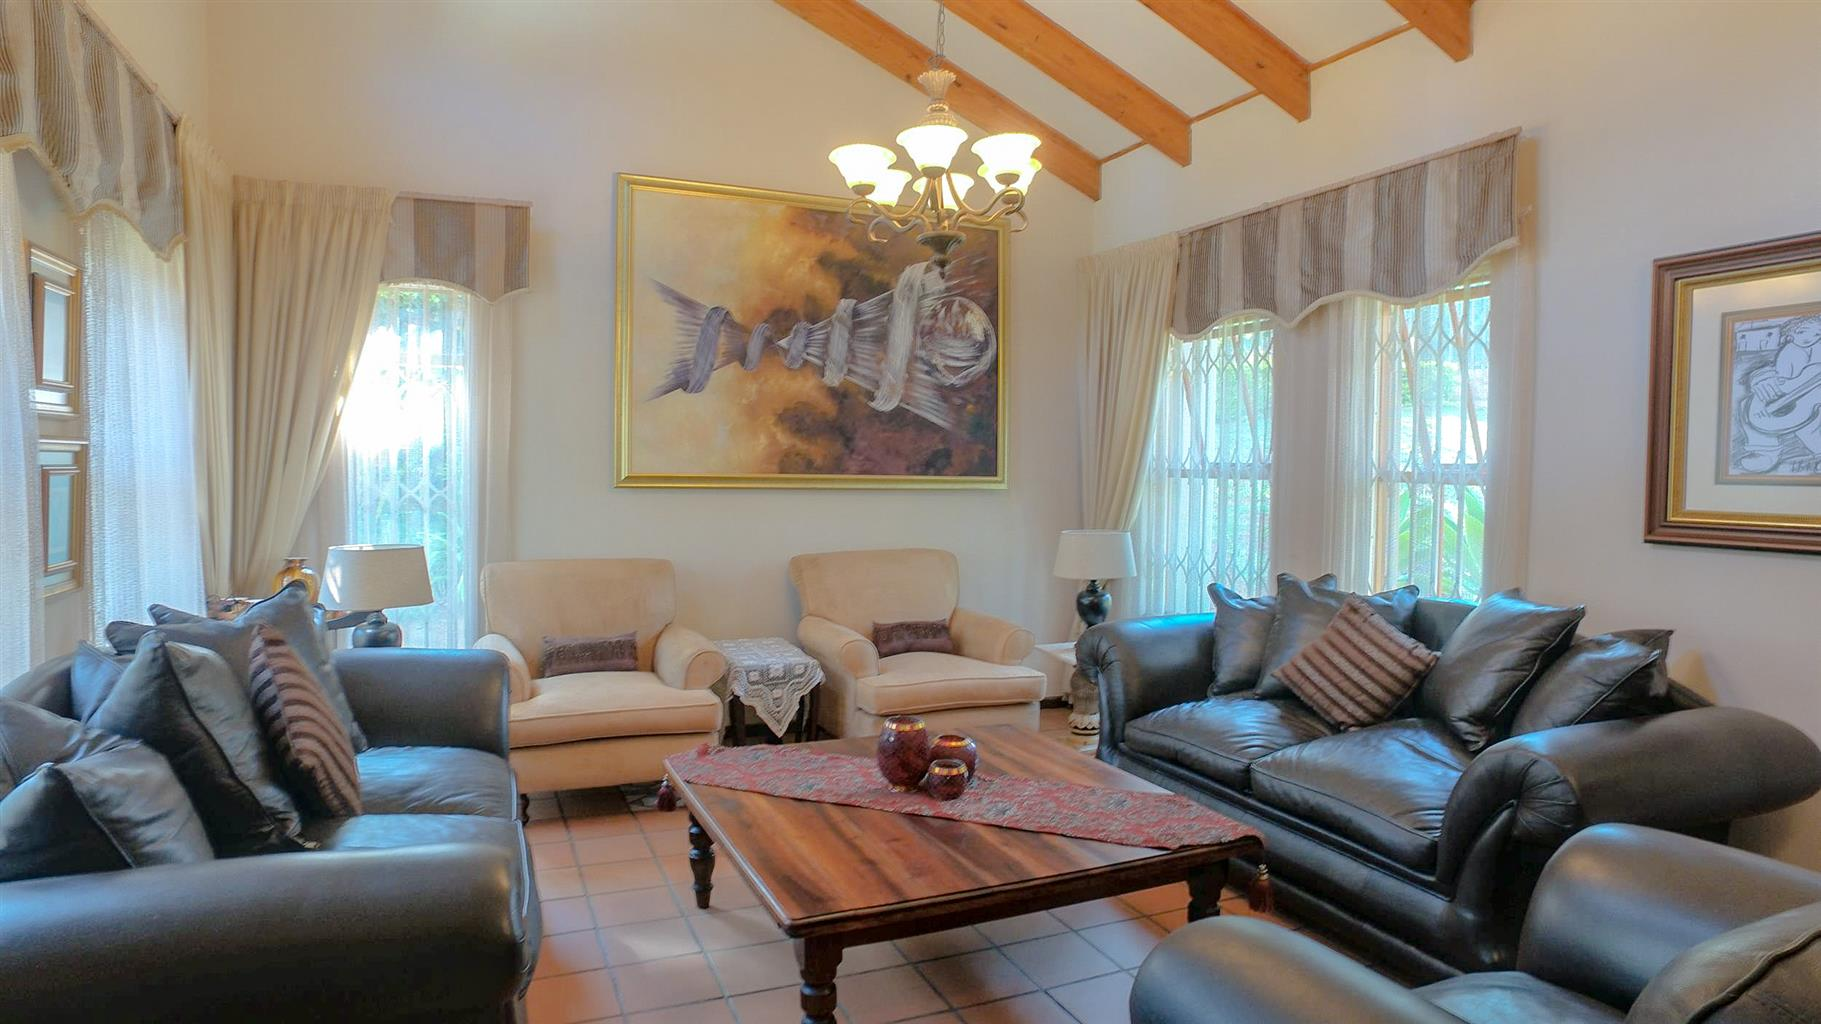 A COSY 5 ROOM FAMILY HOME - AN ENTERTAINER'S DELIGHT